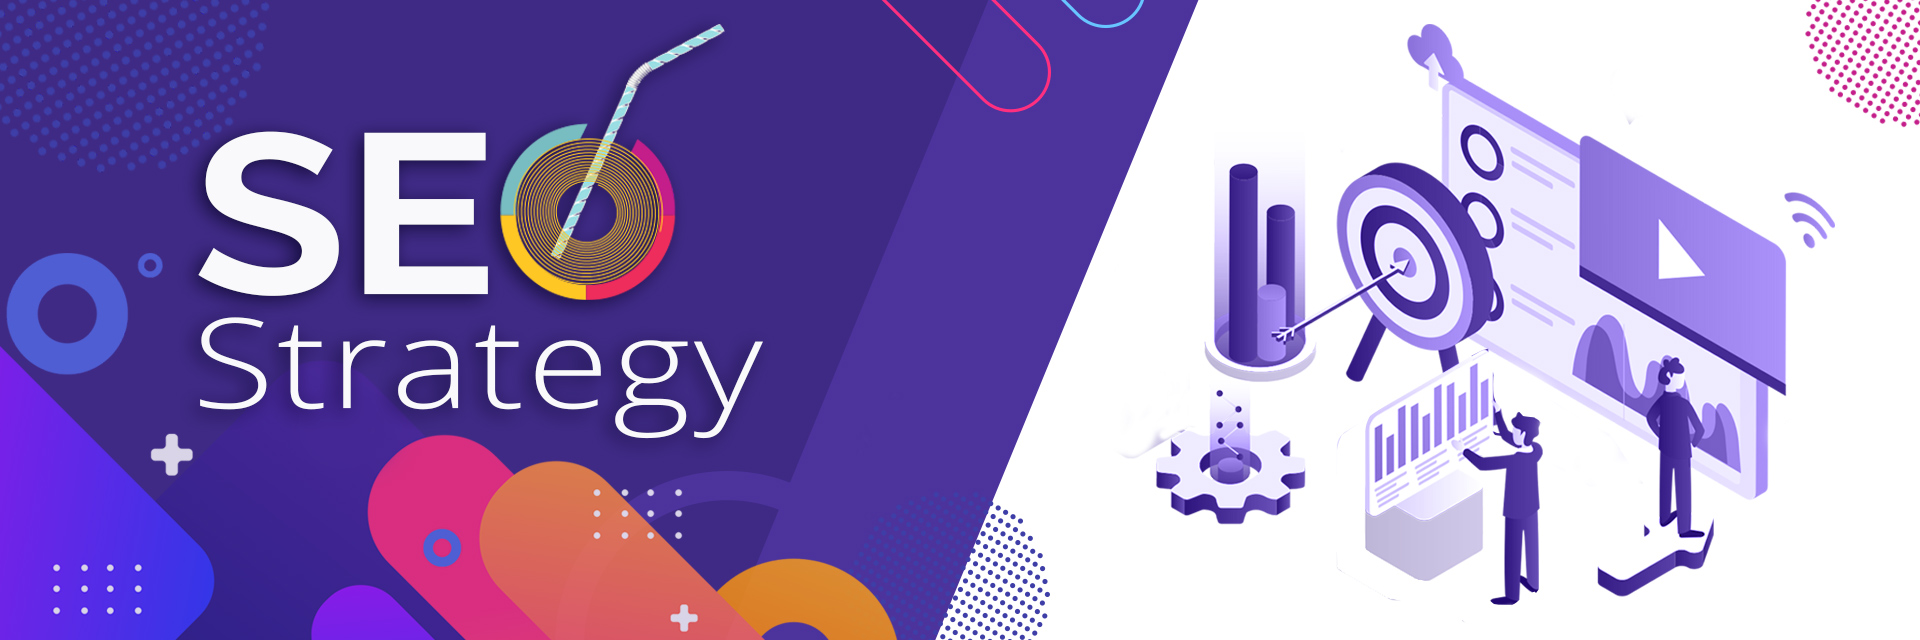 SEO Agency: Audit, Analysis, Strategy, Management • SEO Smoothie